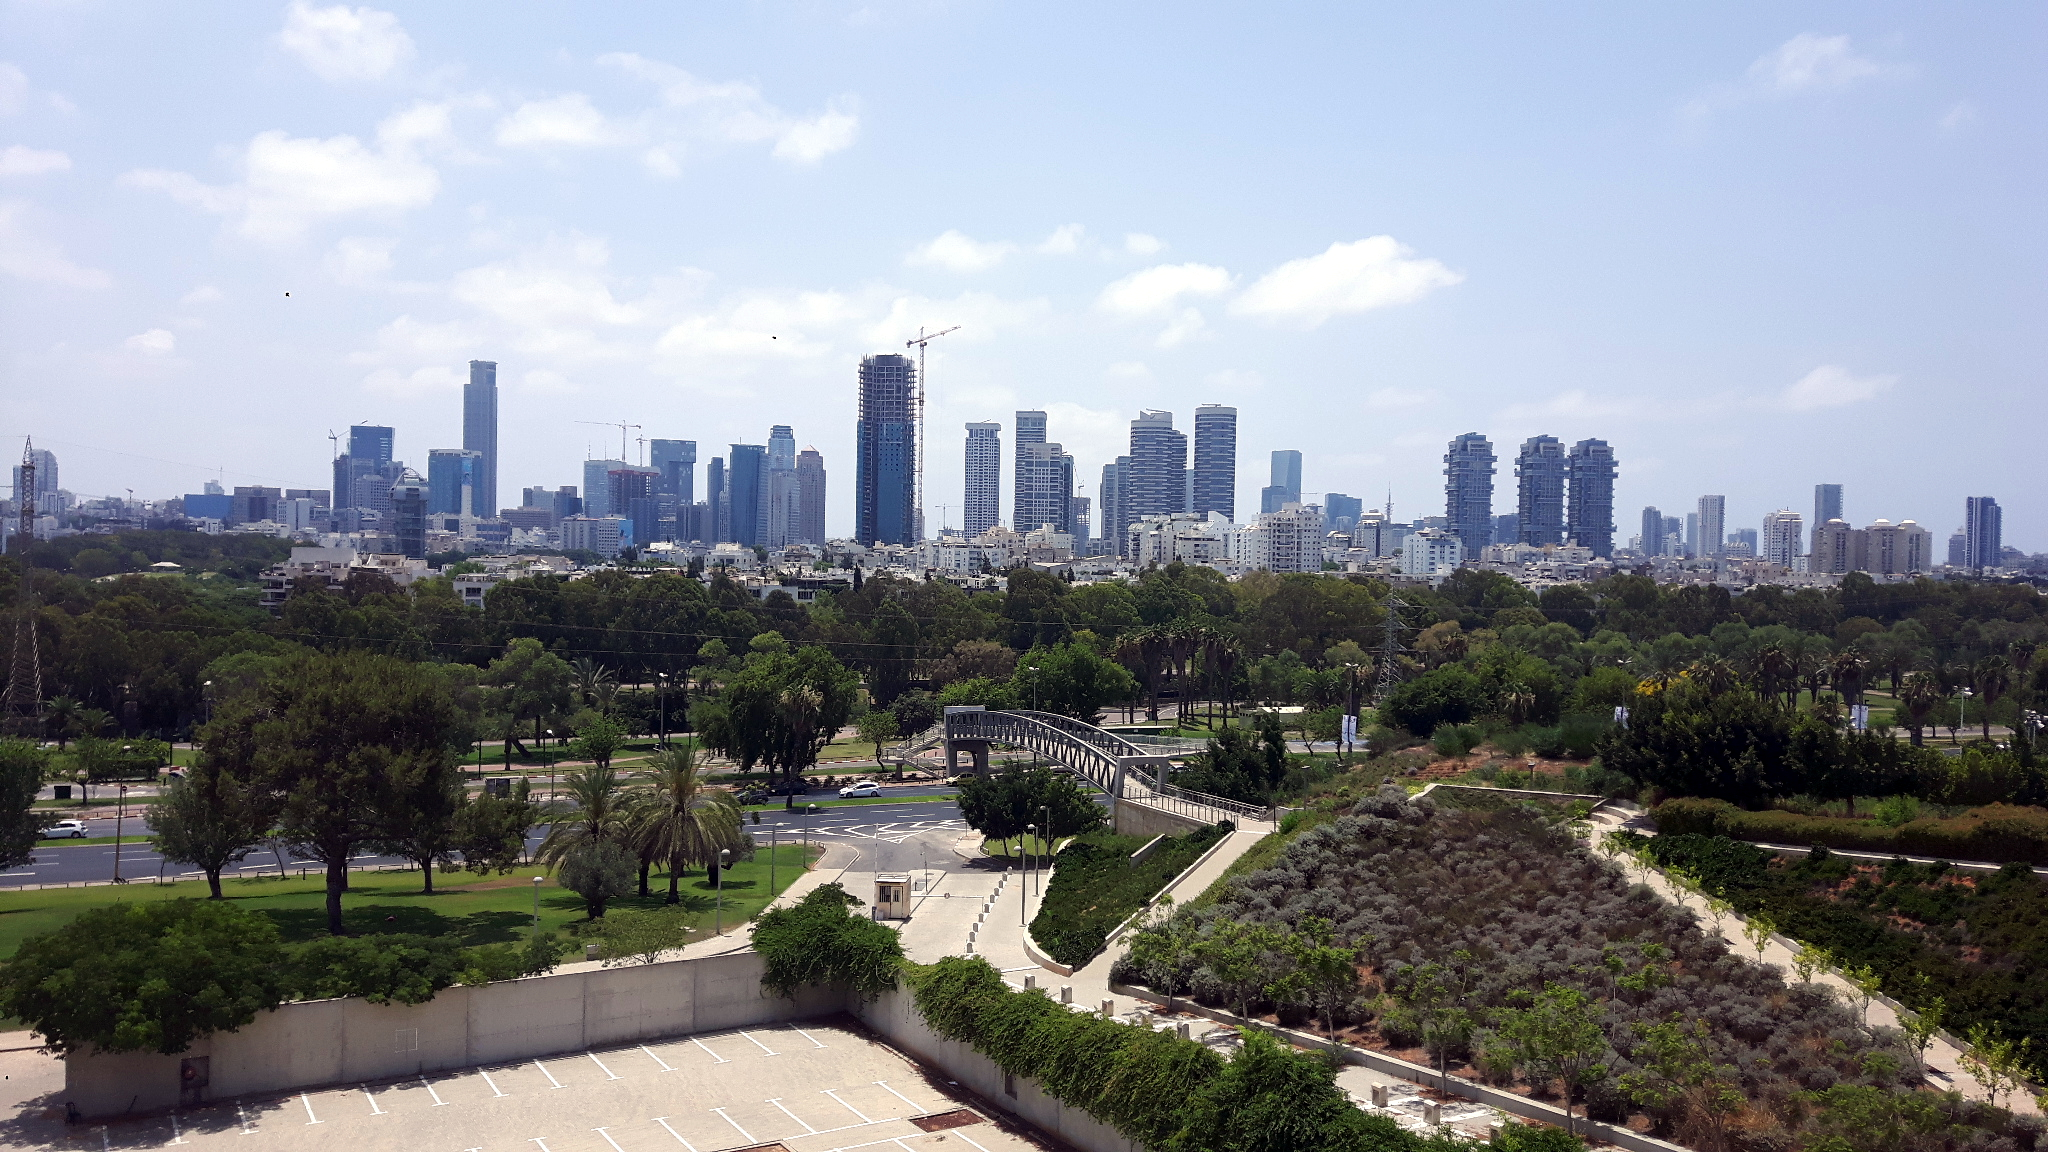 alex google tel aviv. Alex Google Tel Aviv. Aviv Panorama From The Yitzhak Rabin Center.jpg L